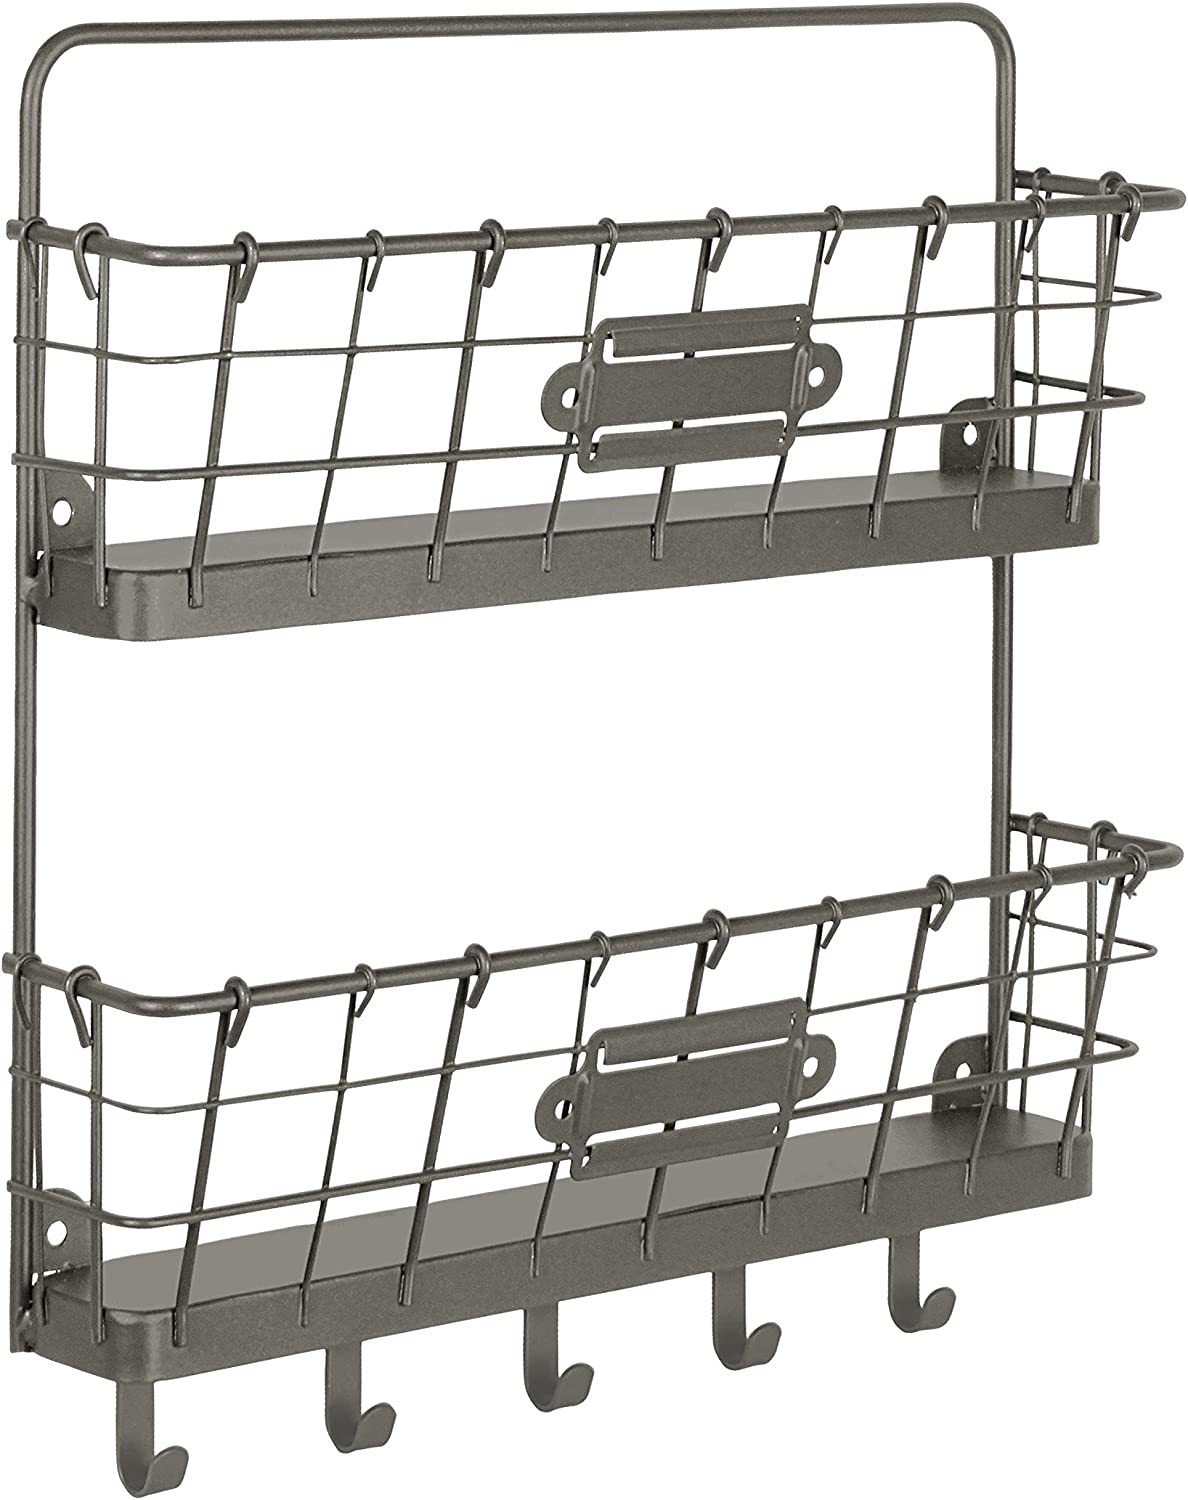 Spectrum Diversified Vintage 2-Tier Organizer & Key Rack Farmhouse Entryway Mailbox with Hooks, Rustic-Style Wall-Mounted Mail Center & Key Holder, One, Industrial Gray